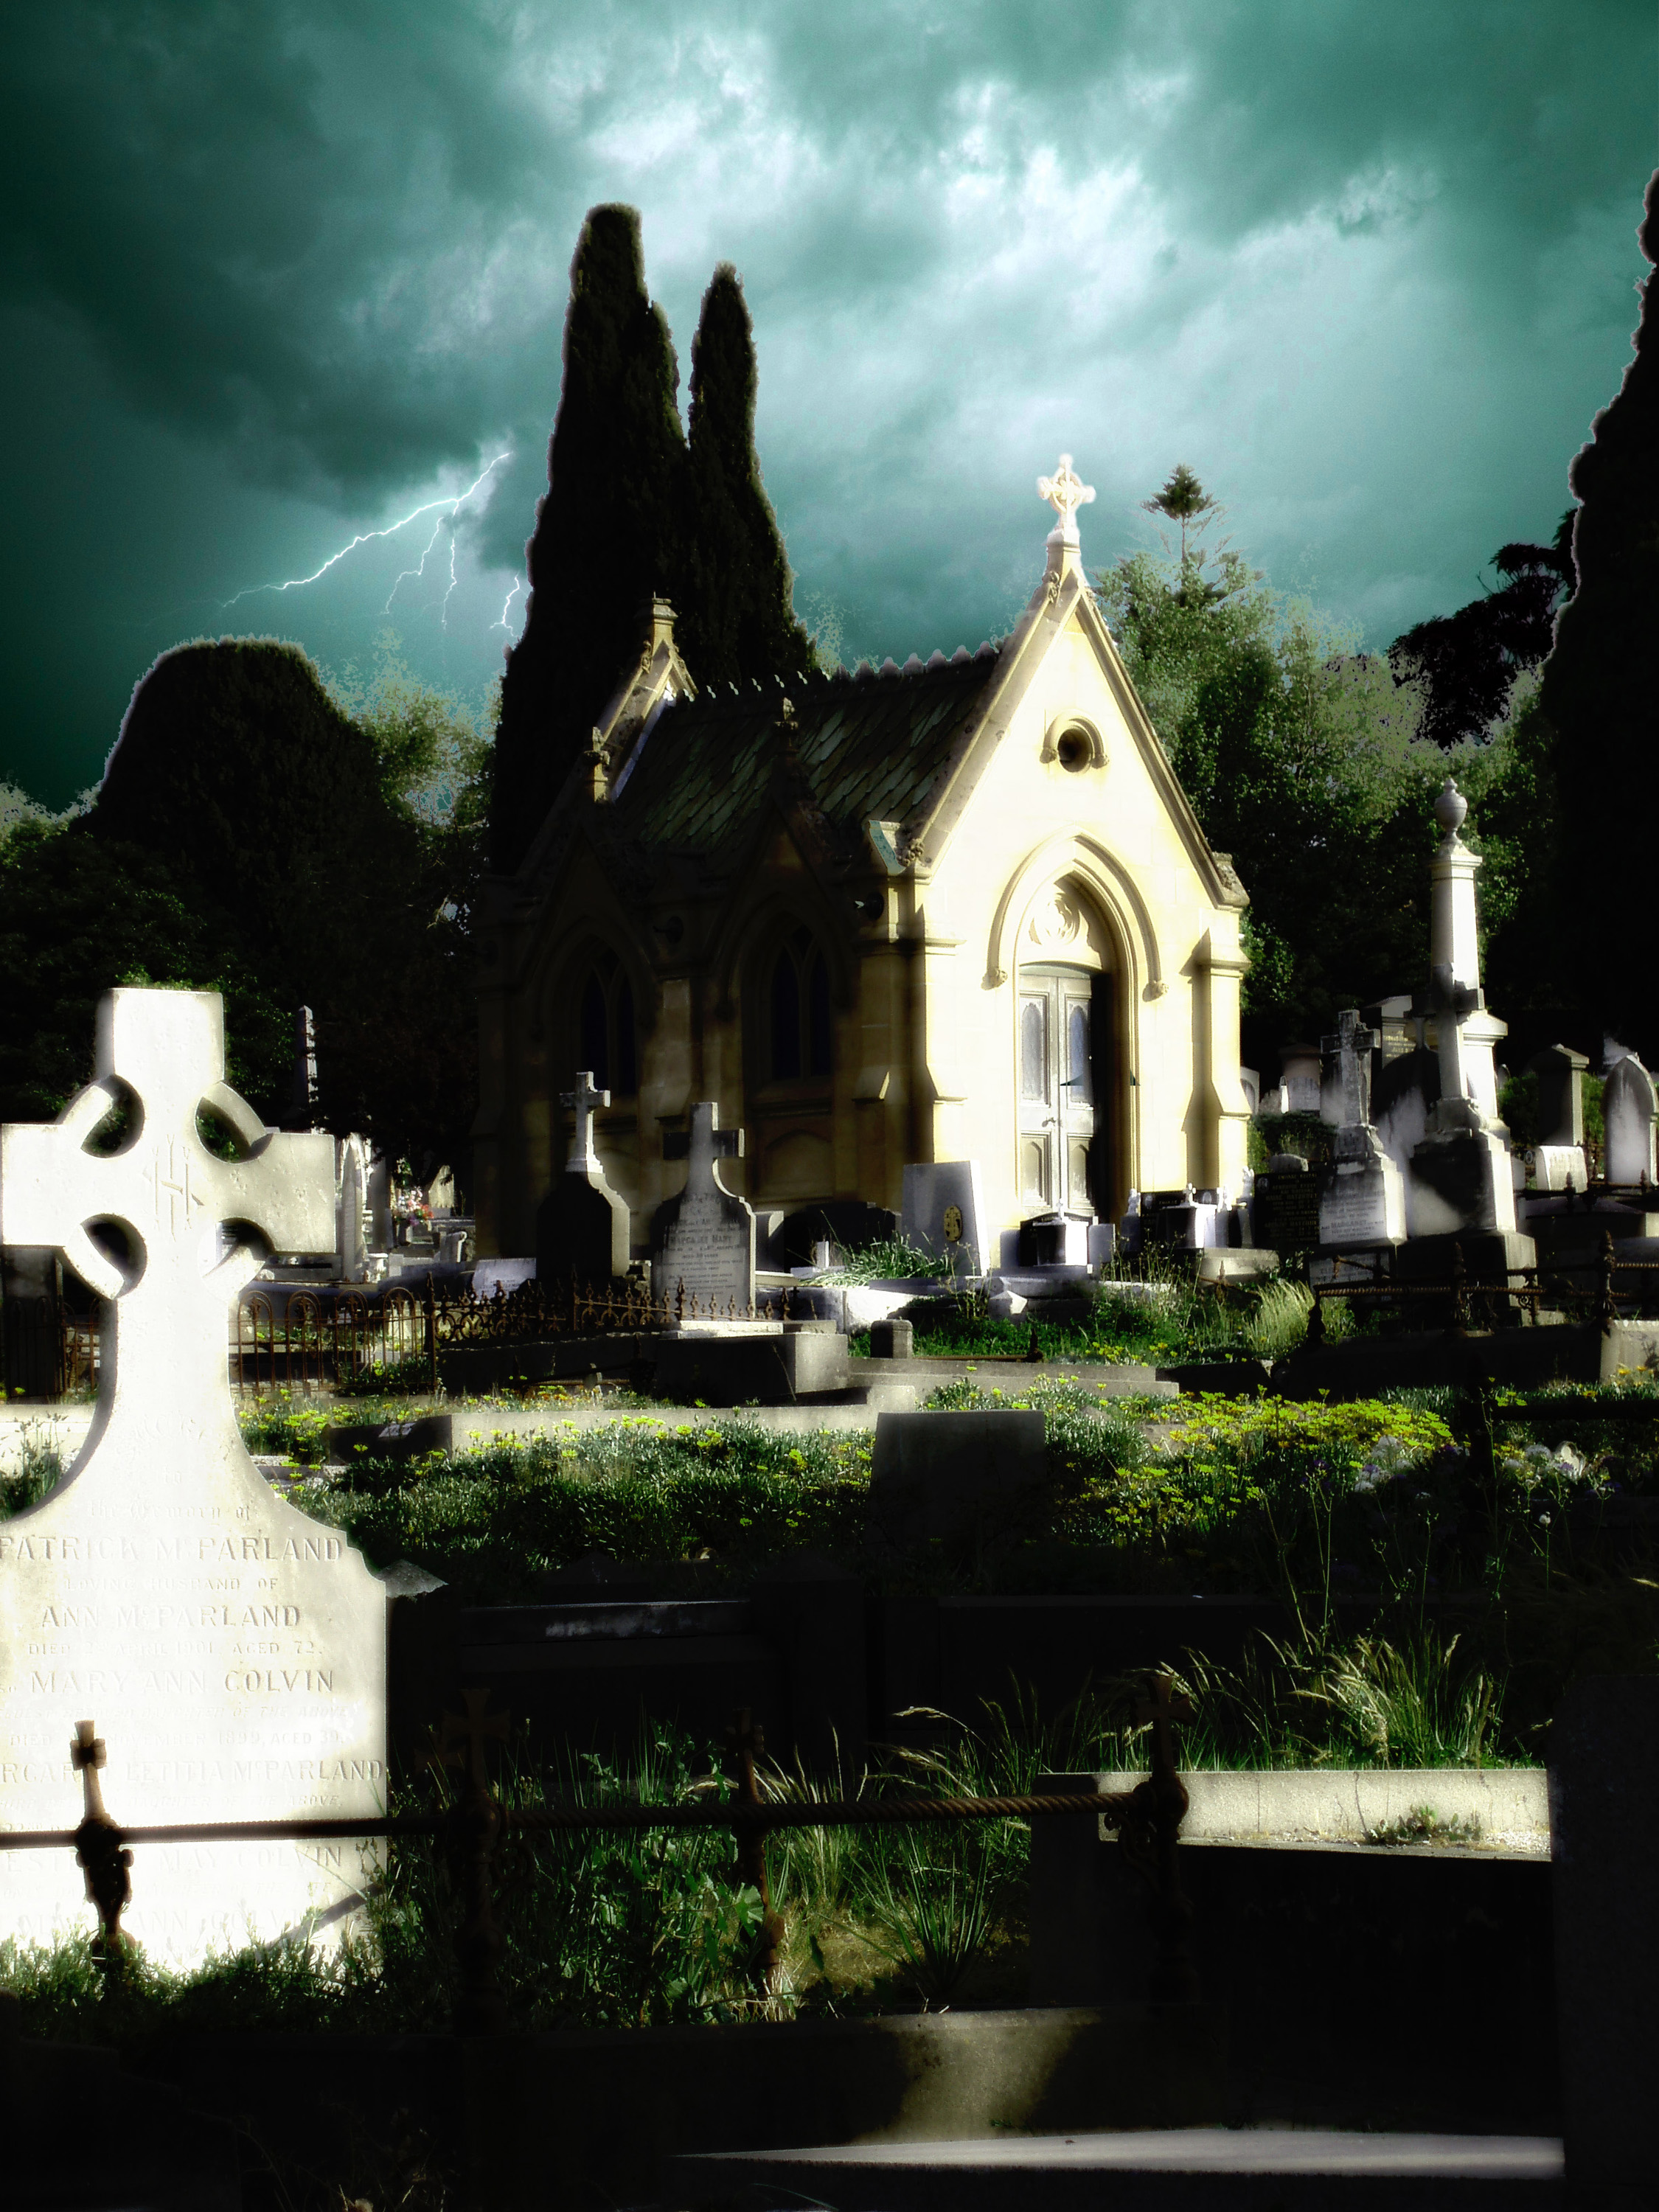 spooky cemetery scene with a tomb and lightning